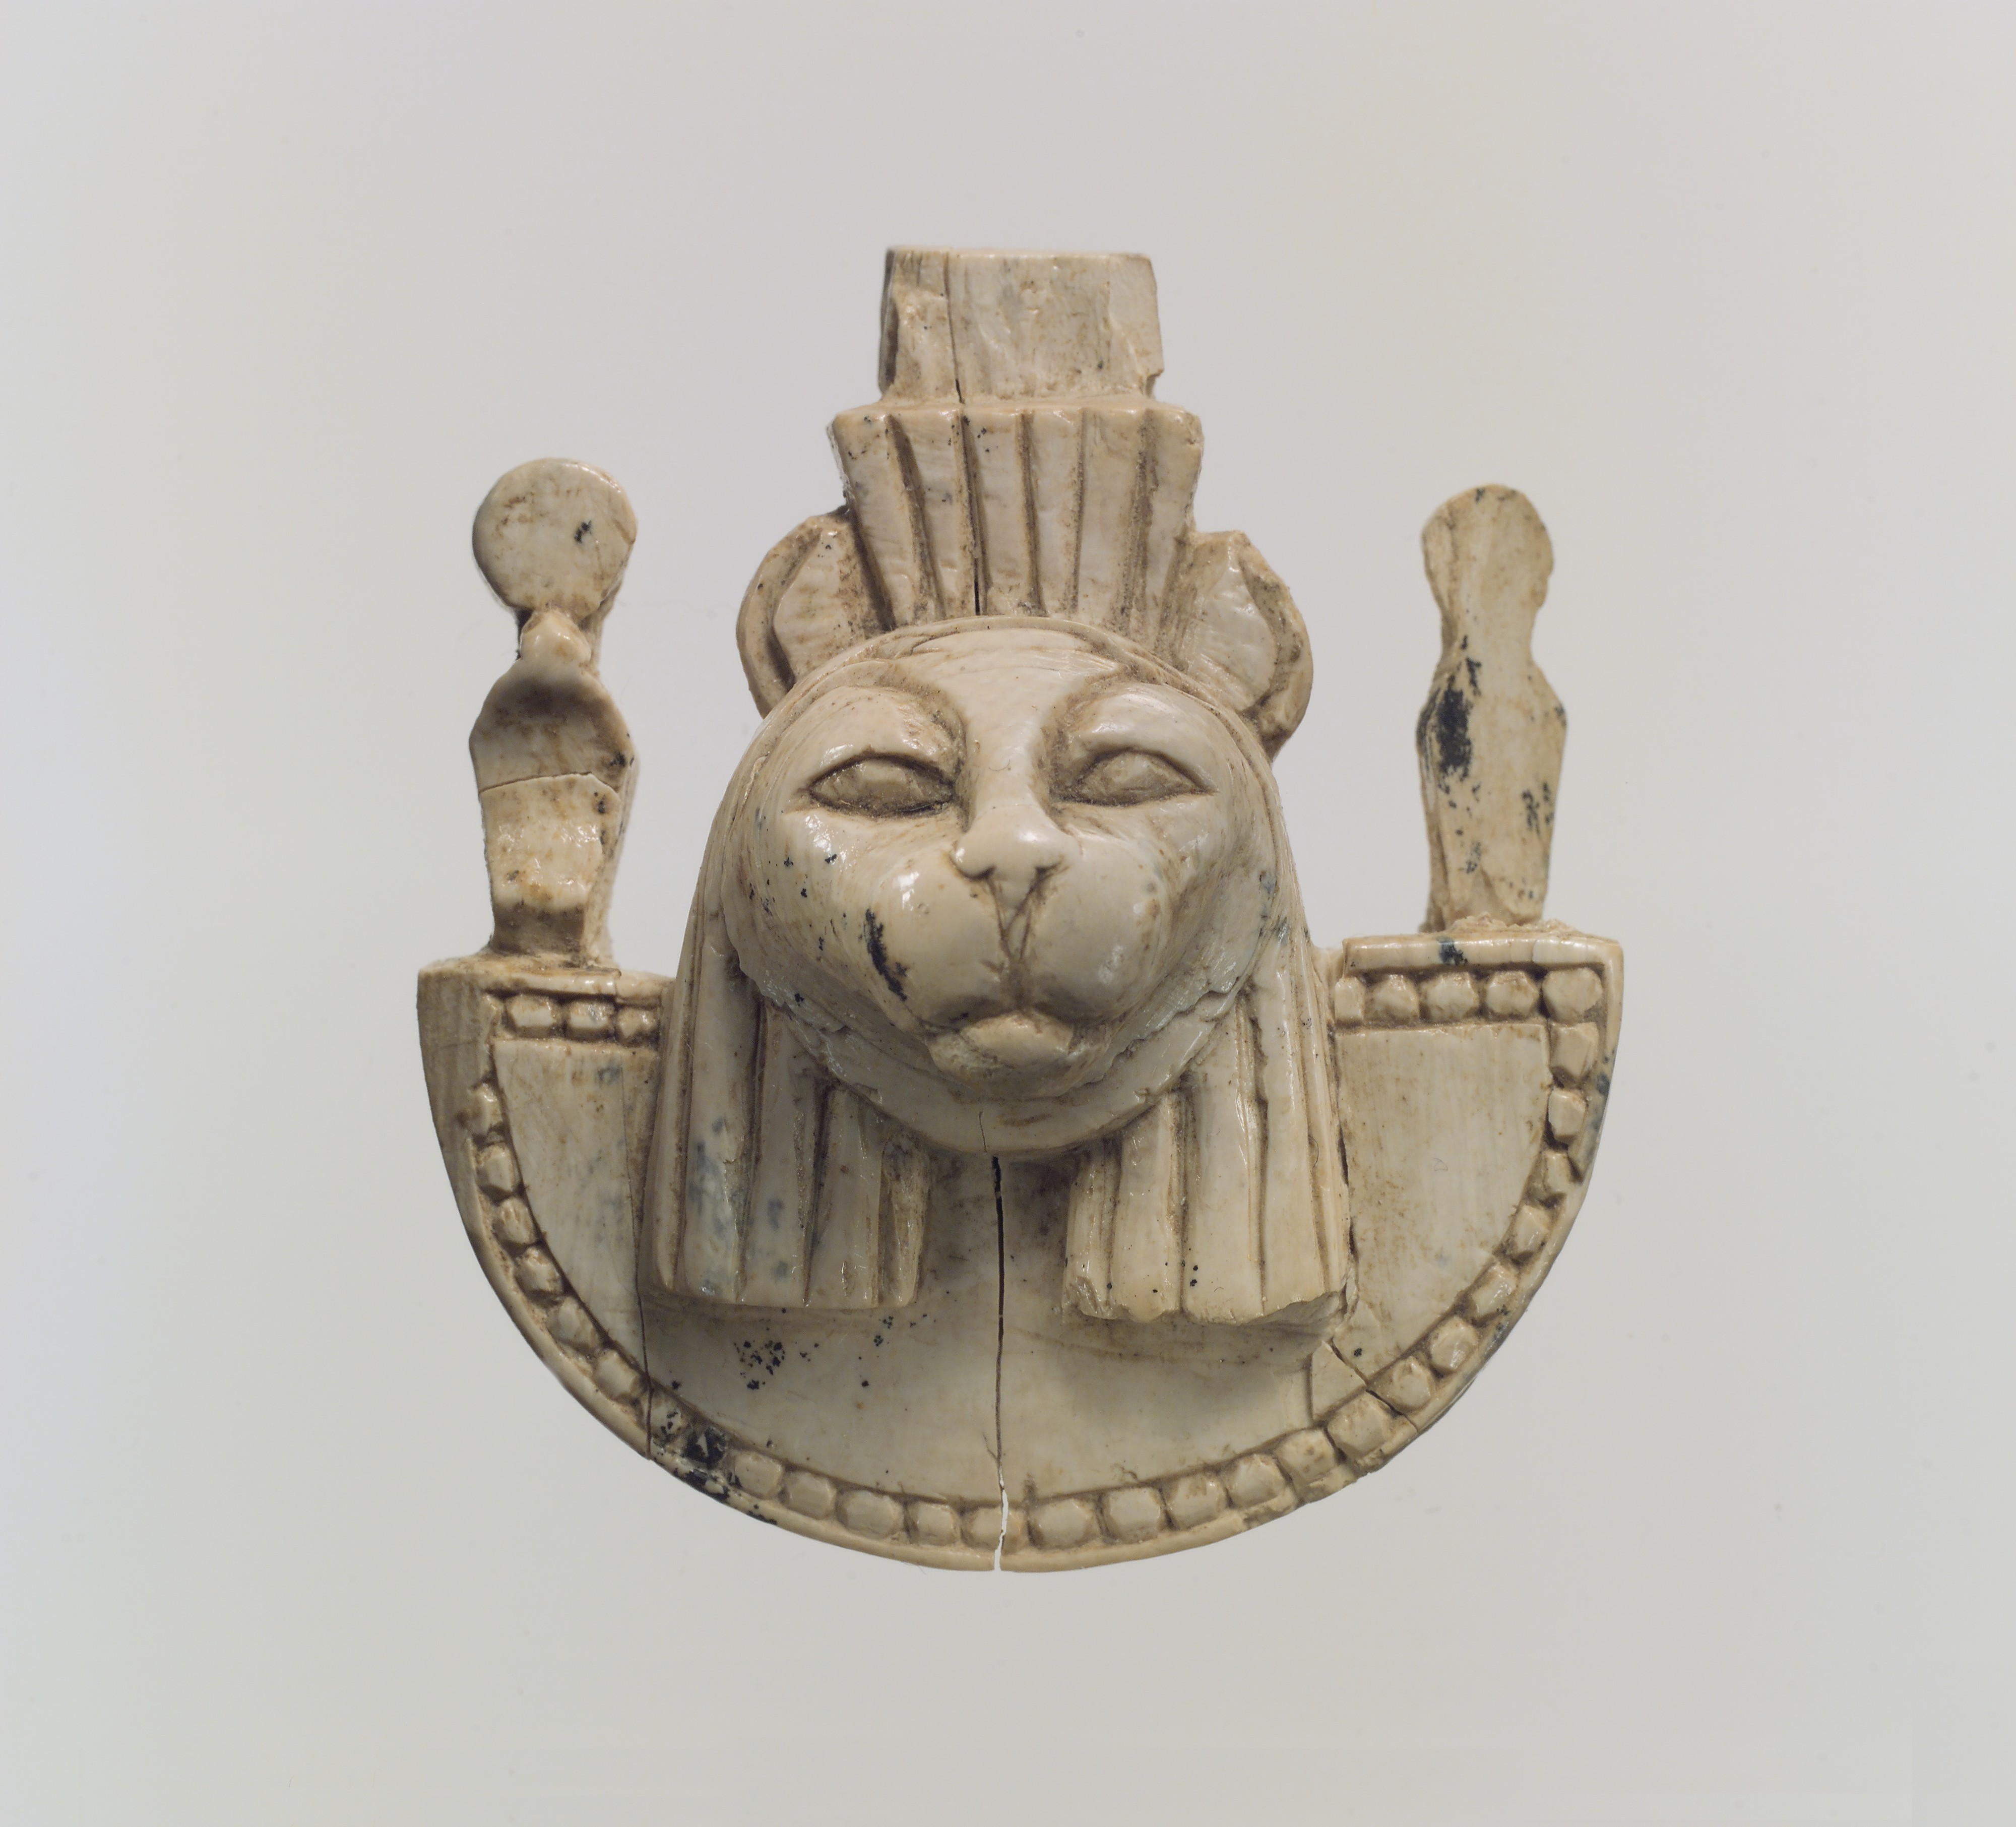 Openwork furniture plaque with the head of a feline.